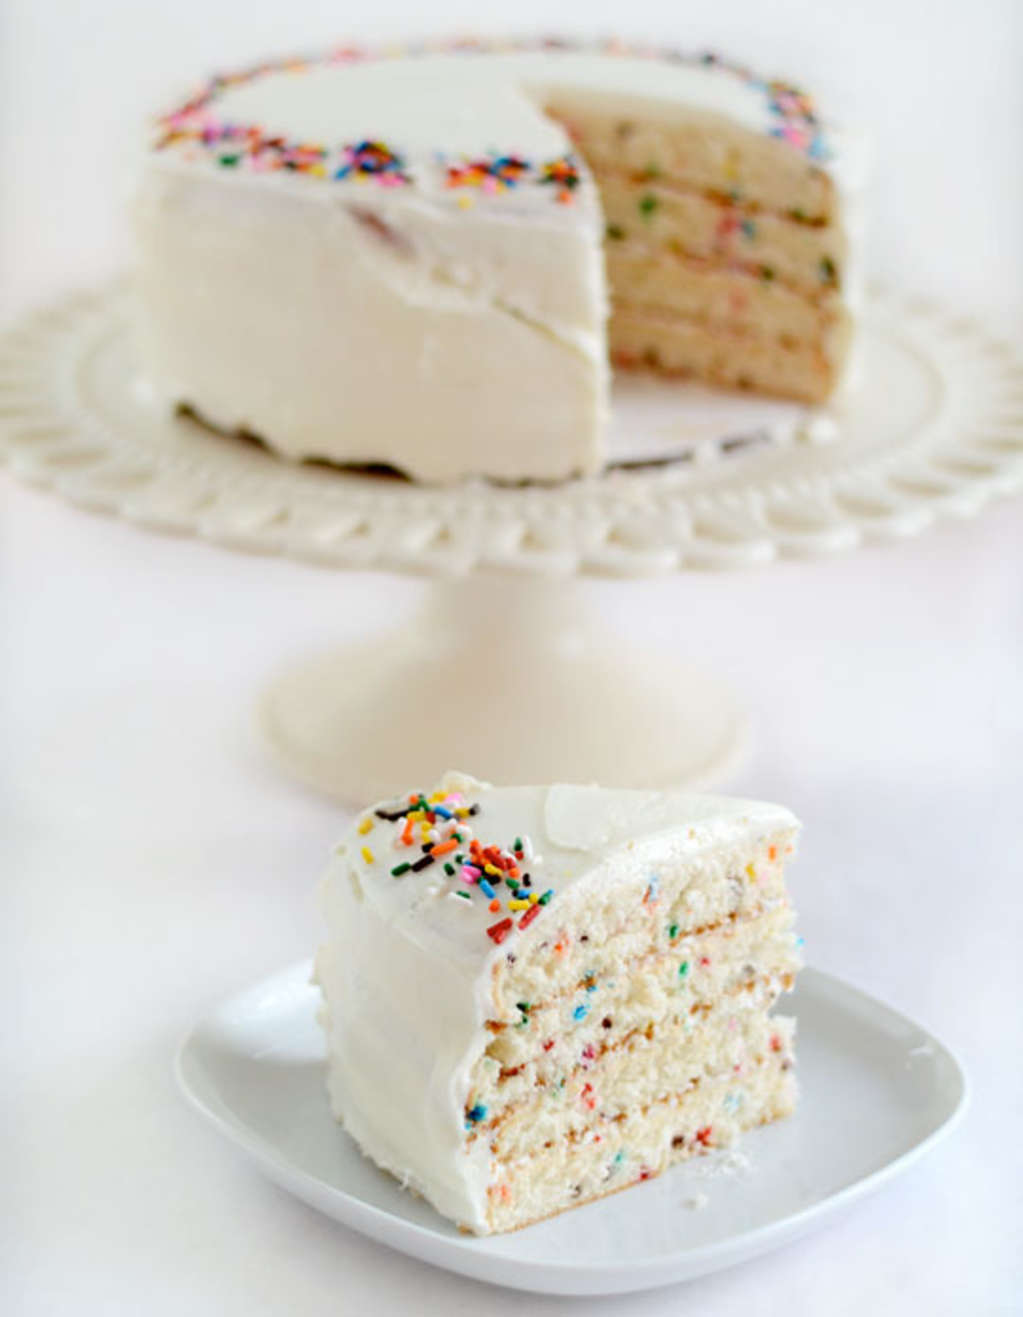 7 Tips for Baking the Ultimate Cake